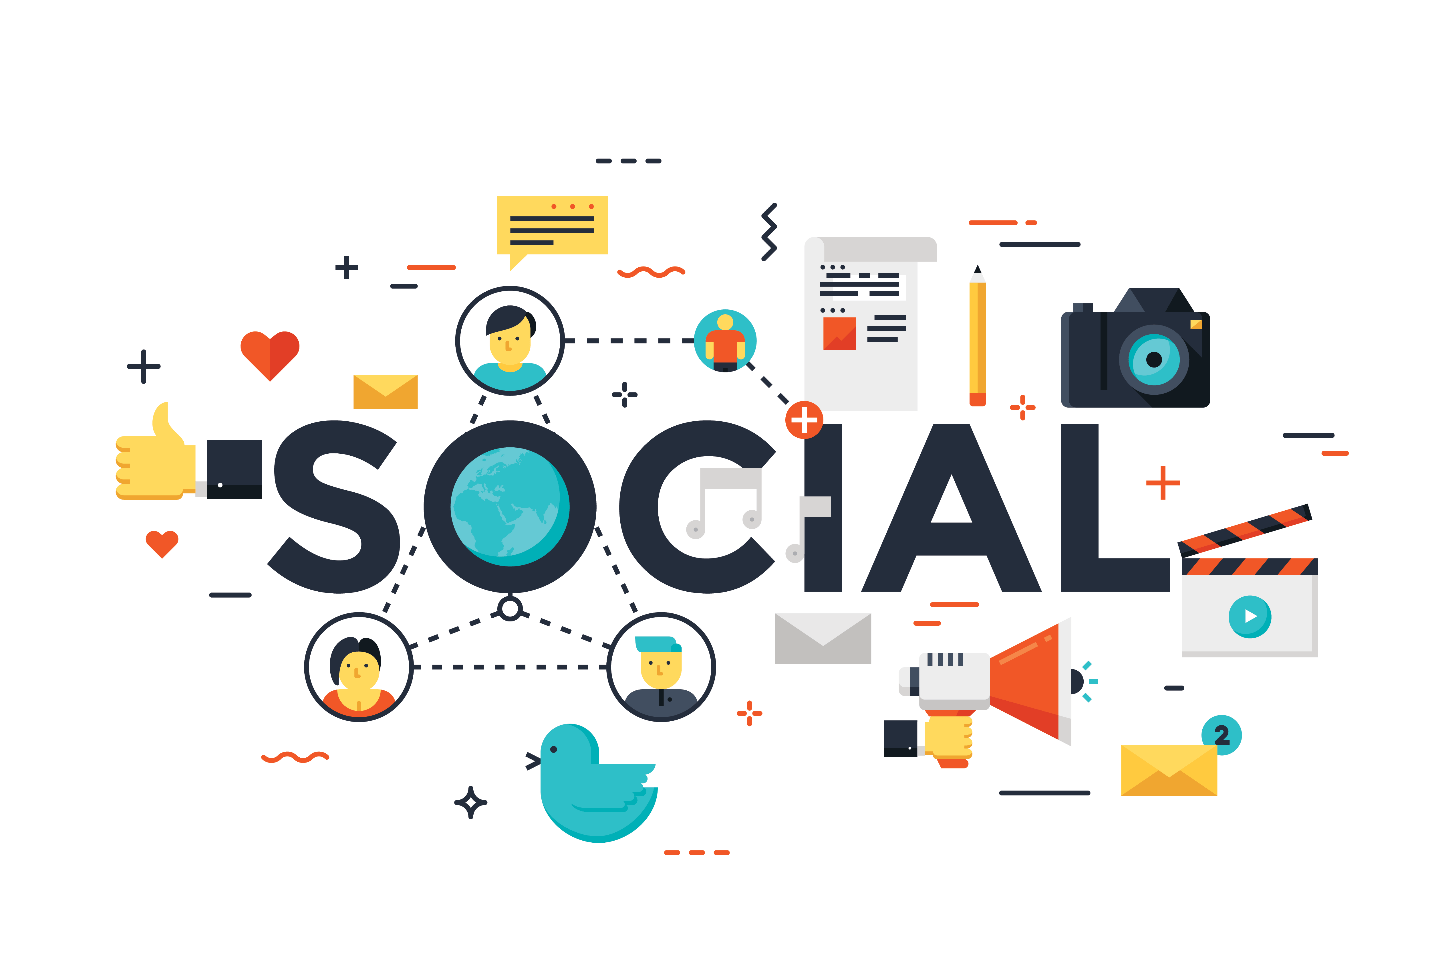 Doing social media and what it means